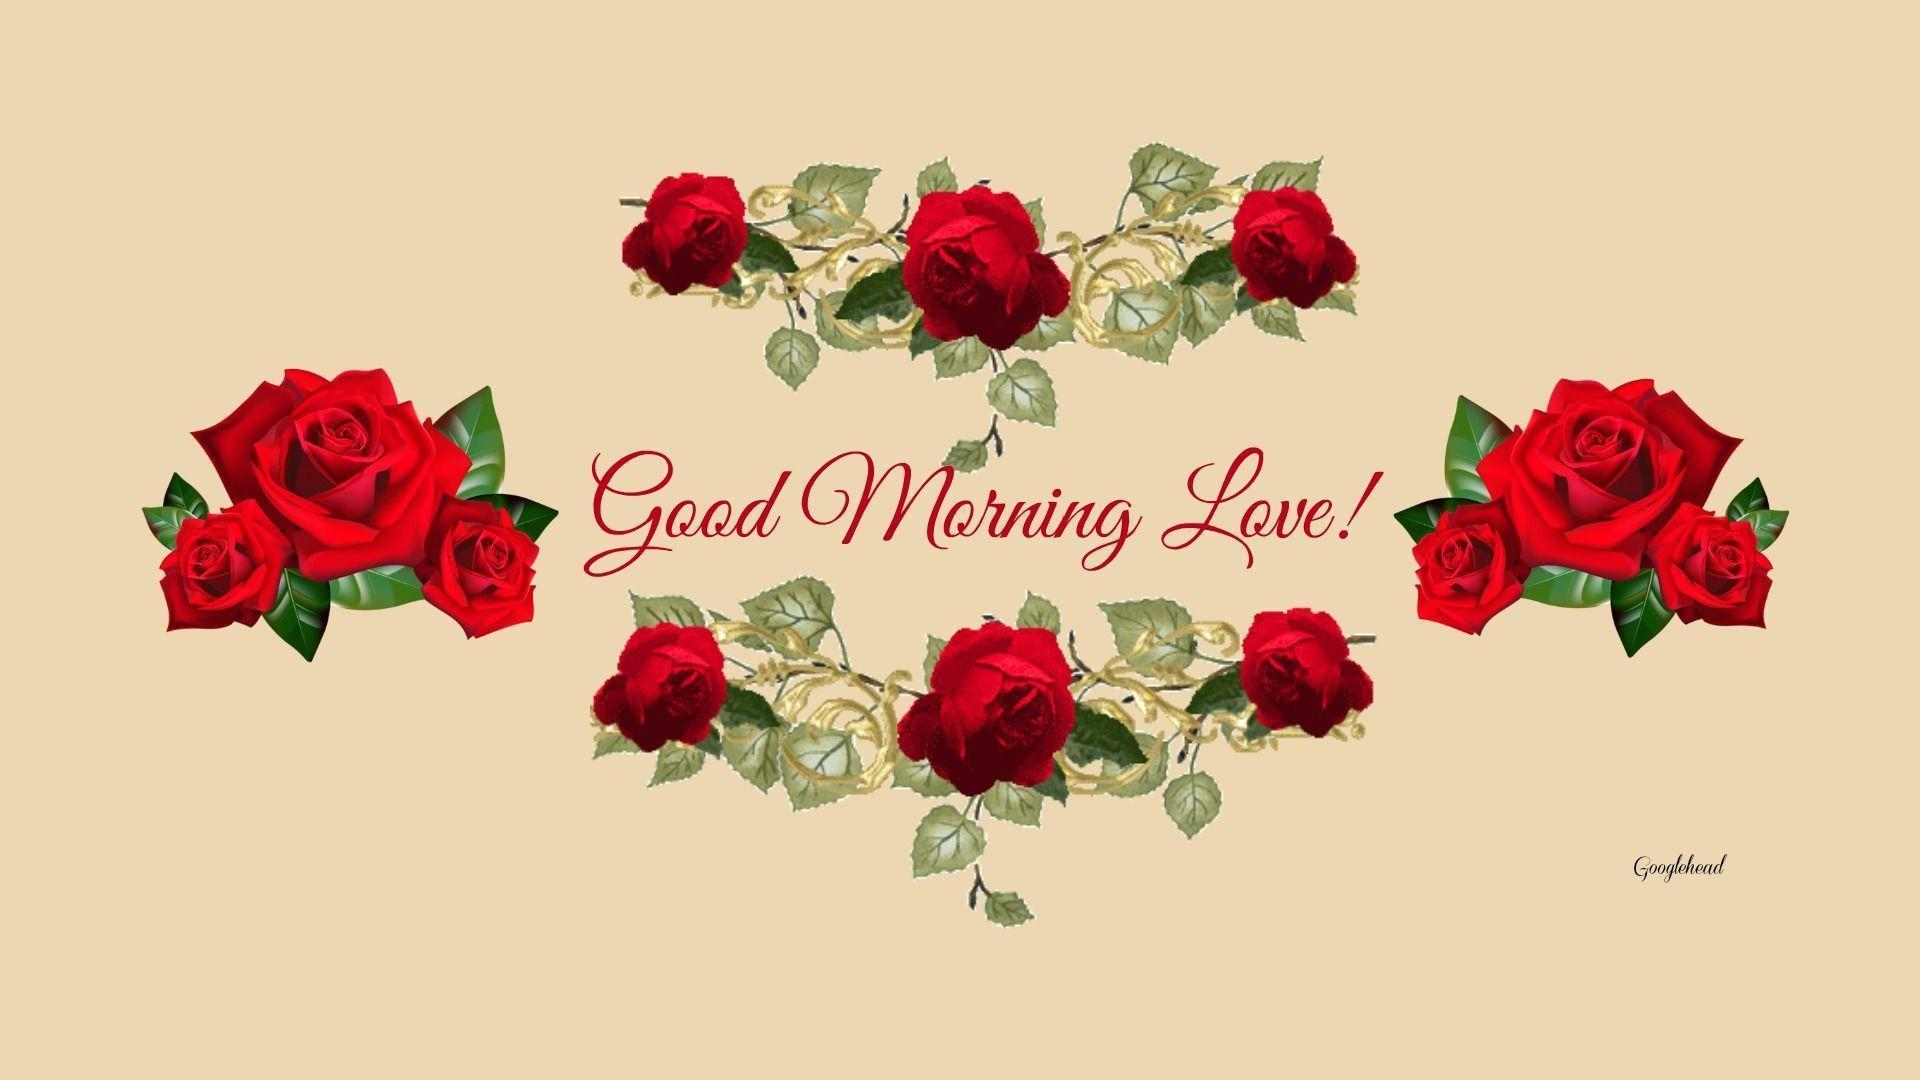 Good Morning Love Images Wallpaper : Wallpapers Good Morning Love - Wallpaper cave